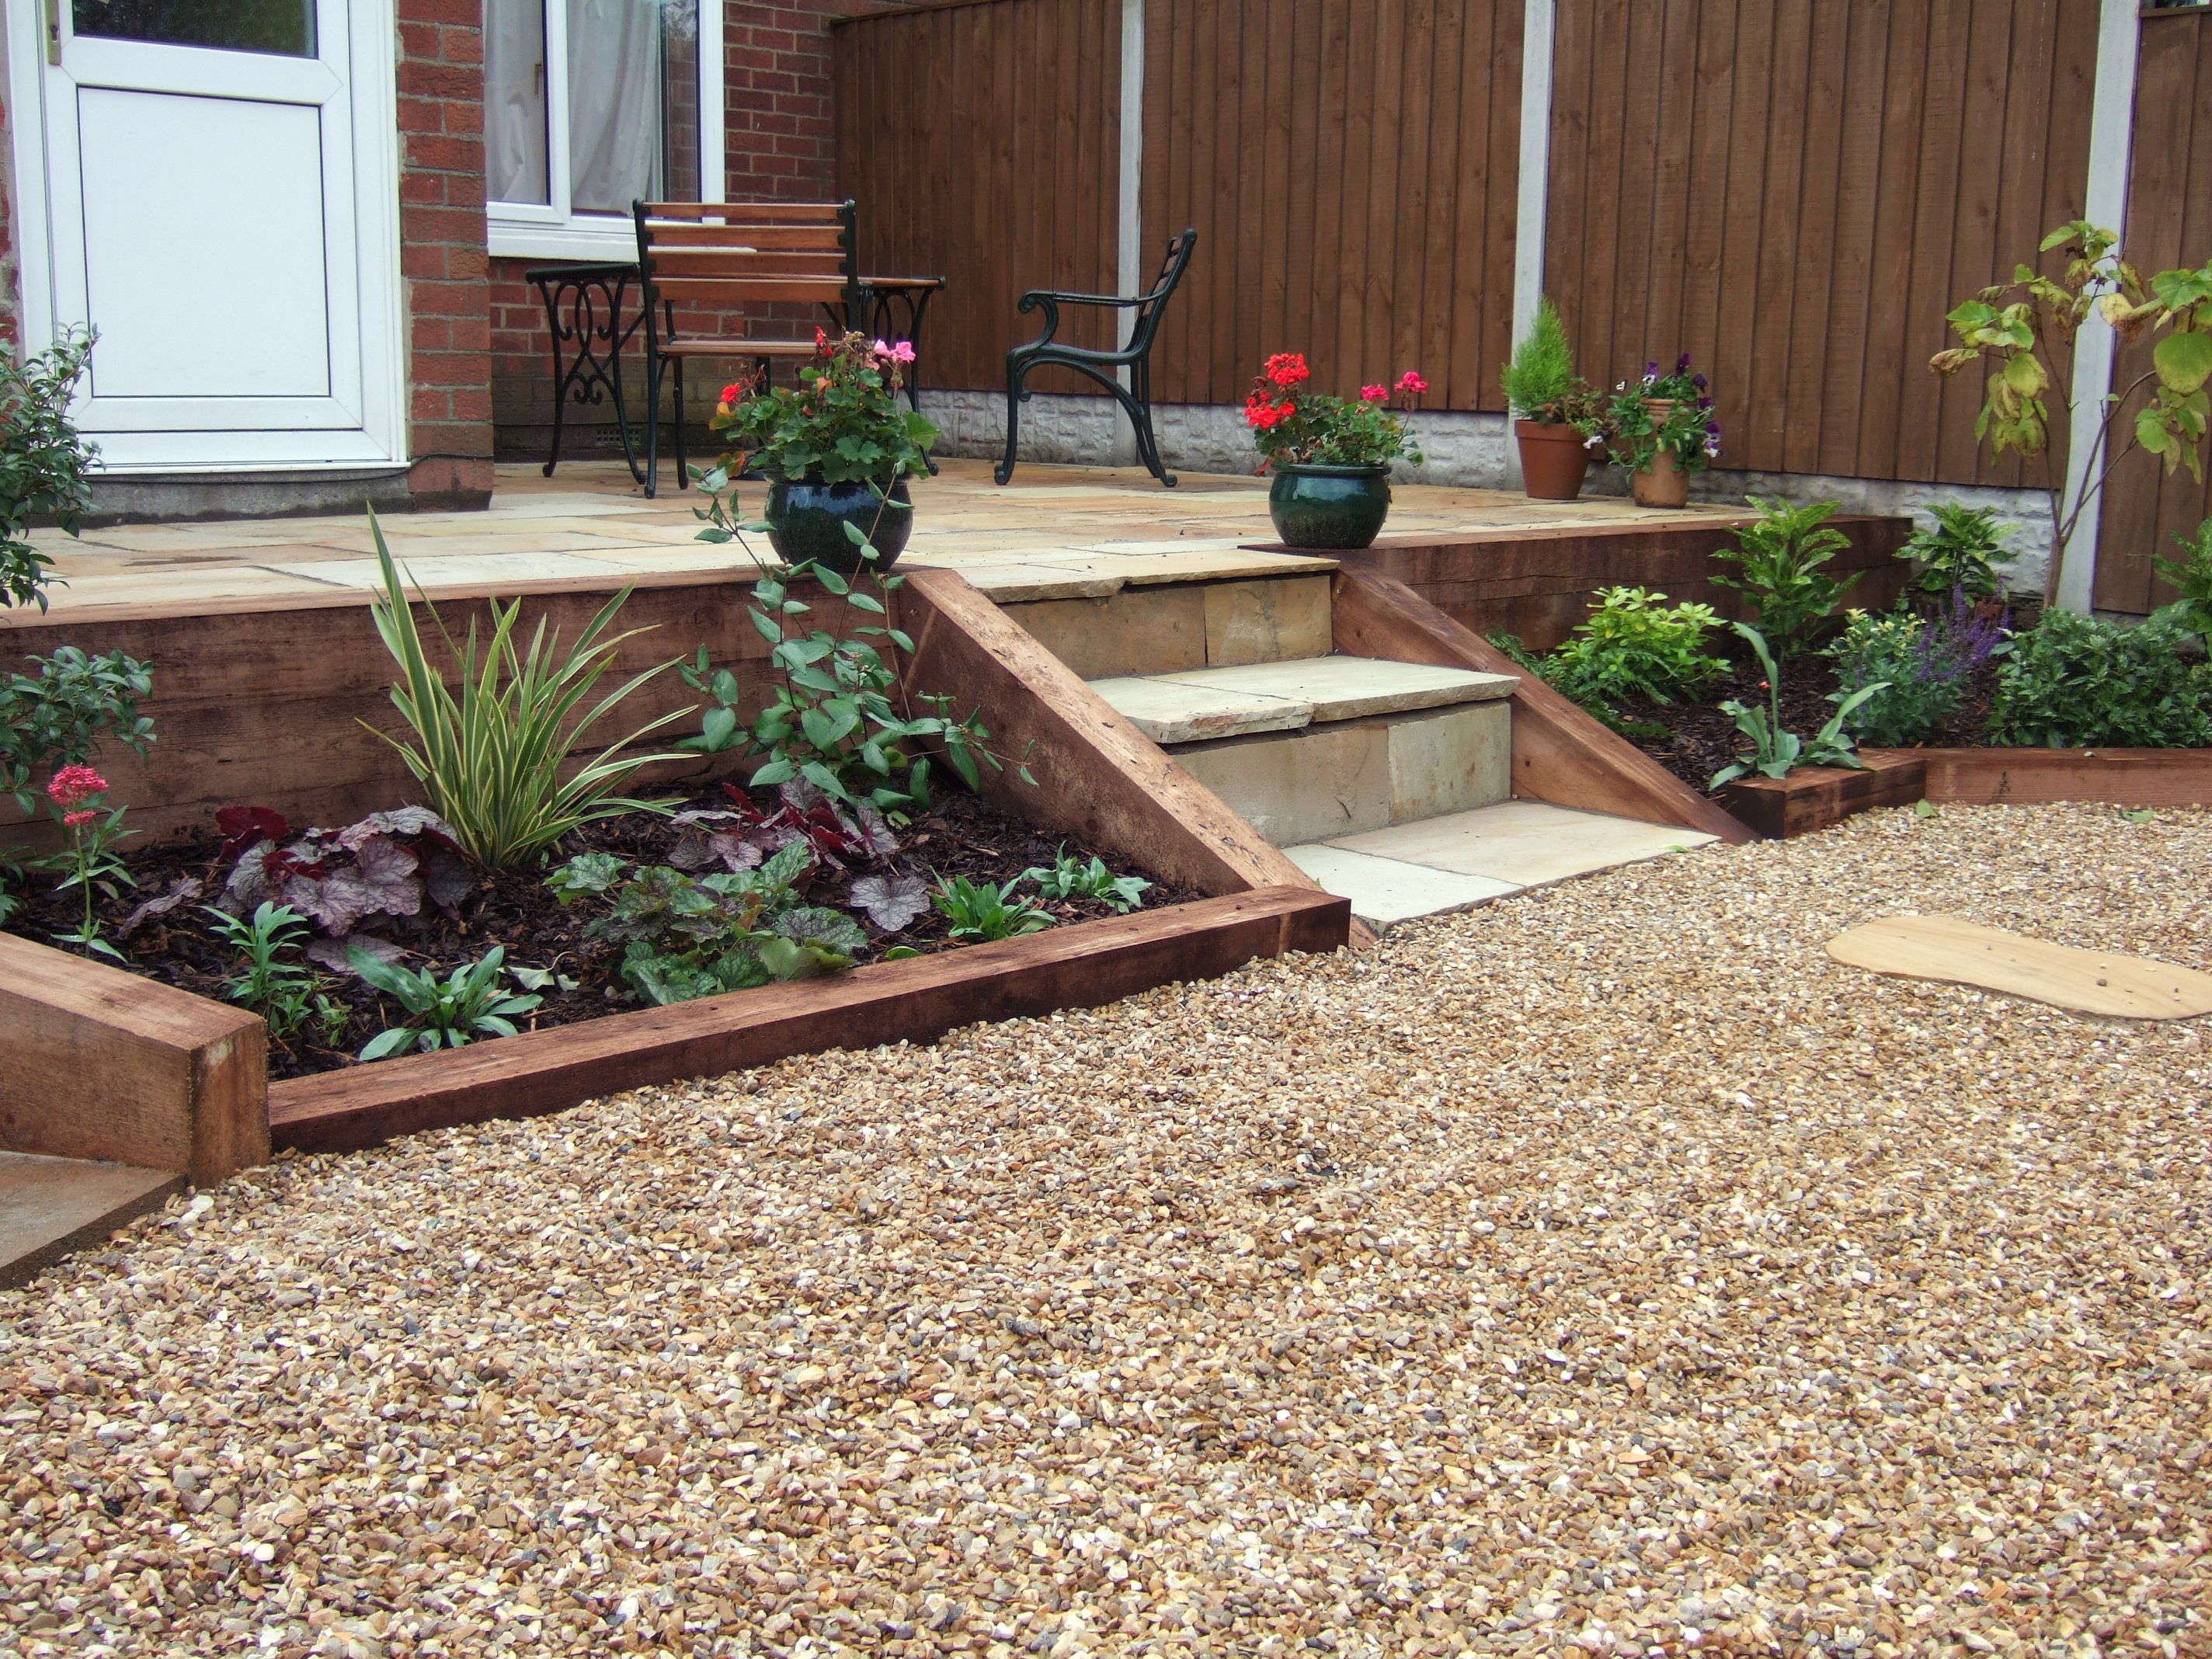 Sloping Garden Leveled Out Using New Sleepers For Retaining Wall